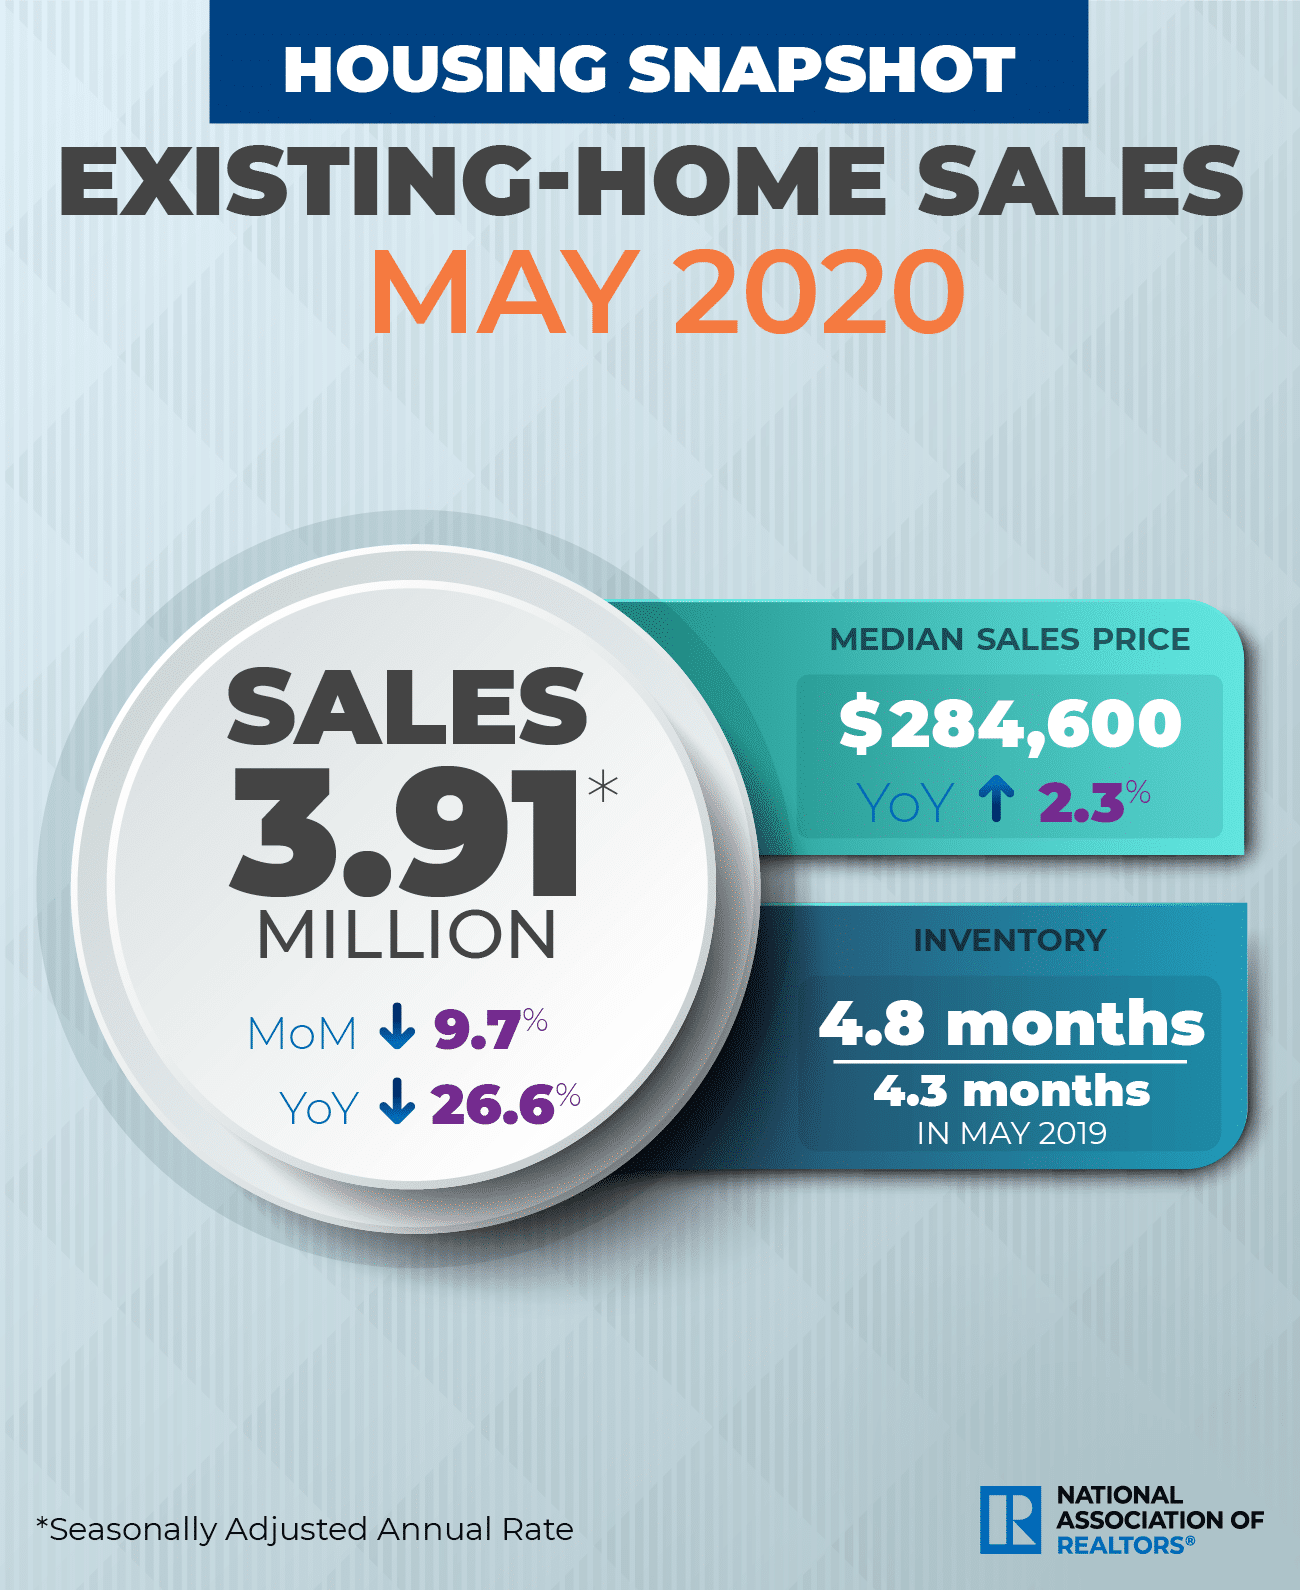 Existing home sale plunge 20.20 in 20rd straight monthly drop   Fort ...